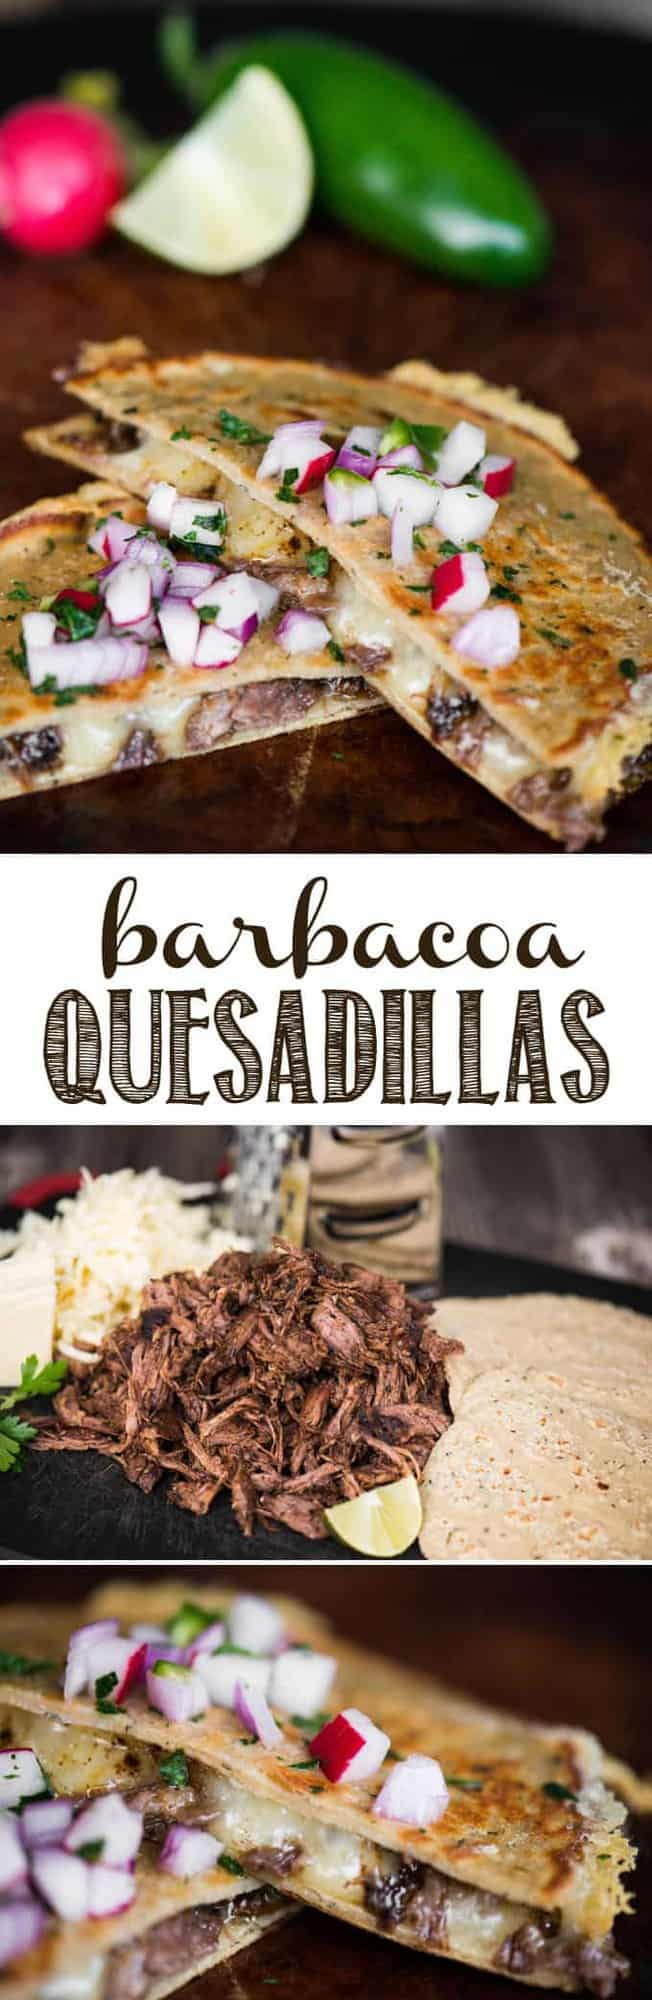 Barbacoa Quesadillas are made quick and easy by pressure cooking the beef roast with an amazing chipotle sauce, then melting cheese in the best tortillas. #barbacoa #barbacoaquesadilla #chipotlebeef